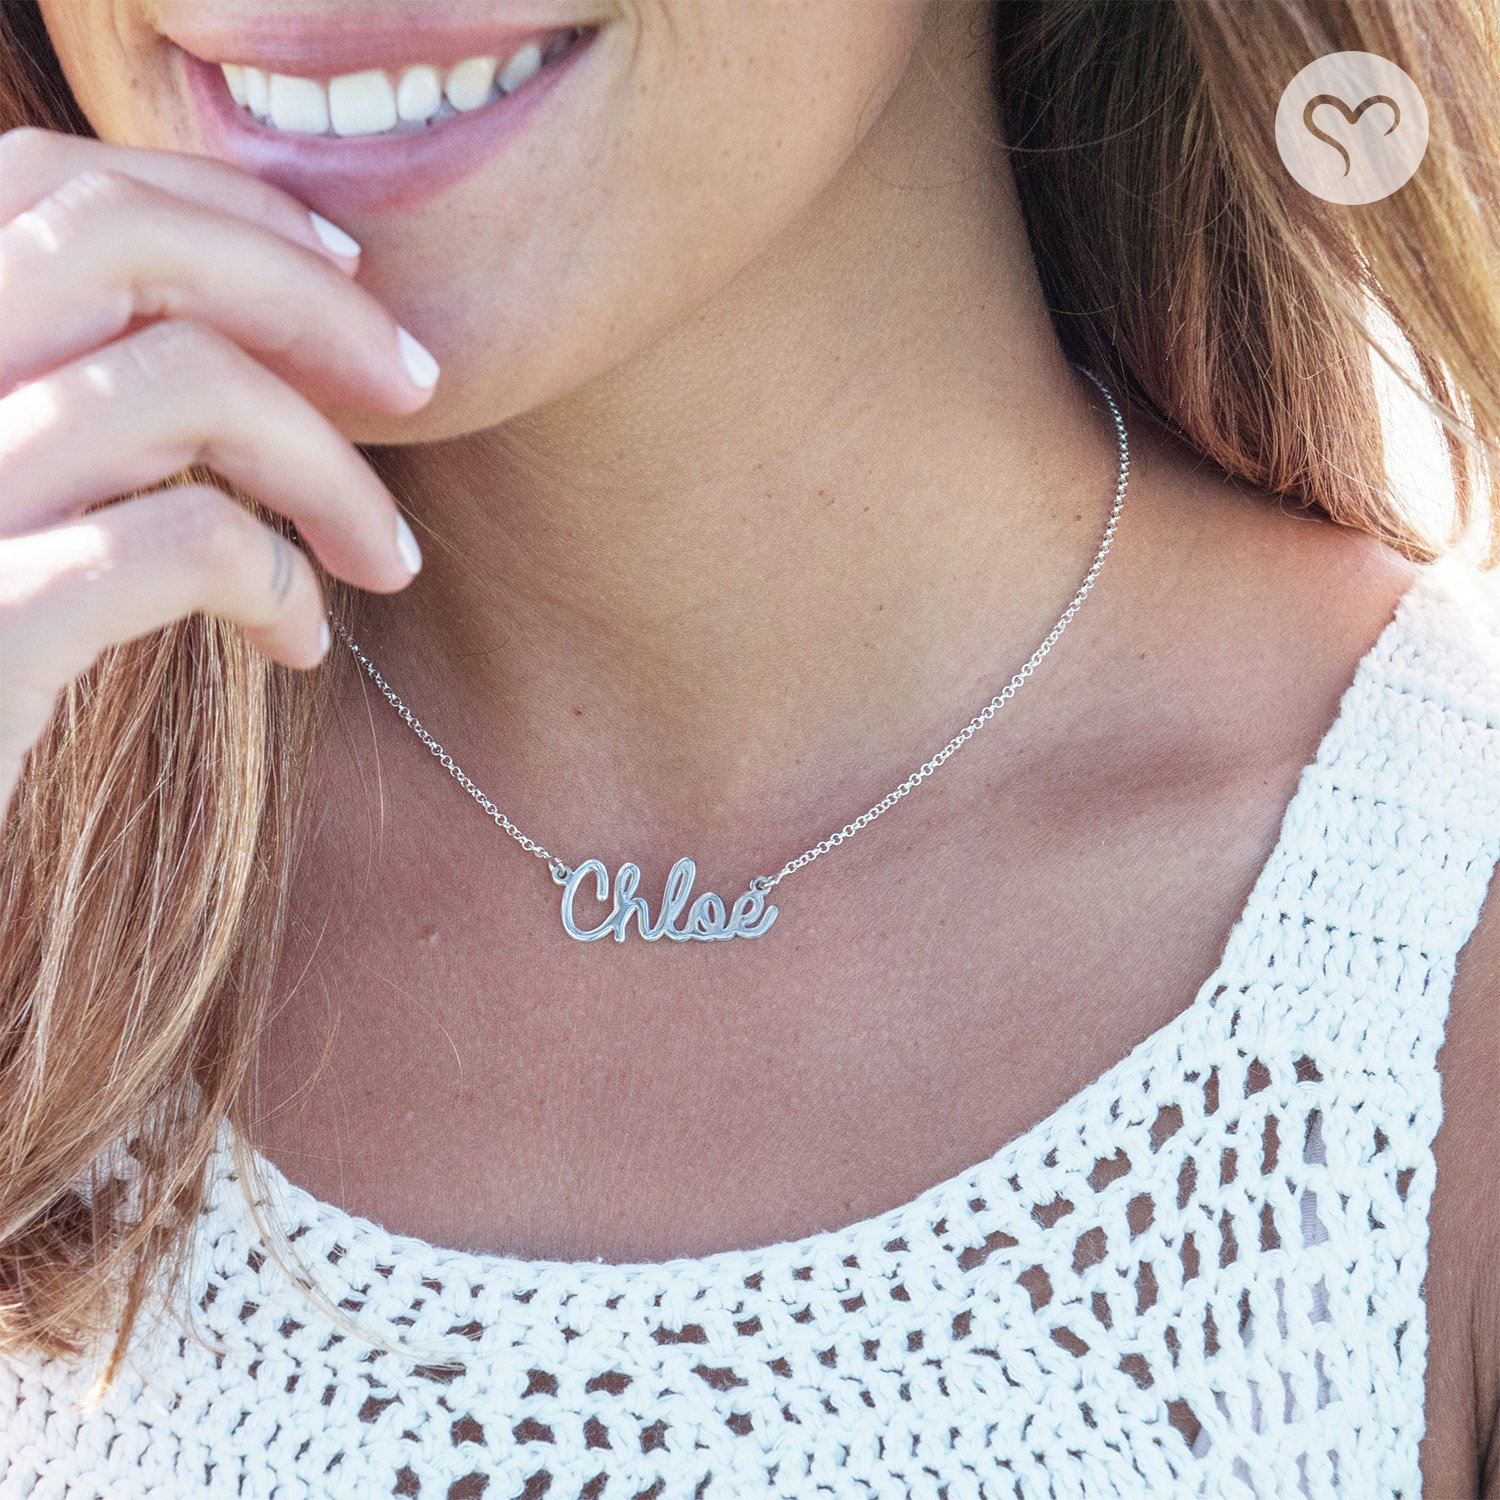 Amazoncom Personalized Name Necklace Cursive Font Sterling Silver